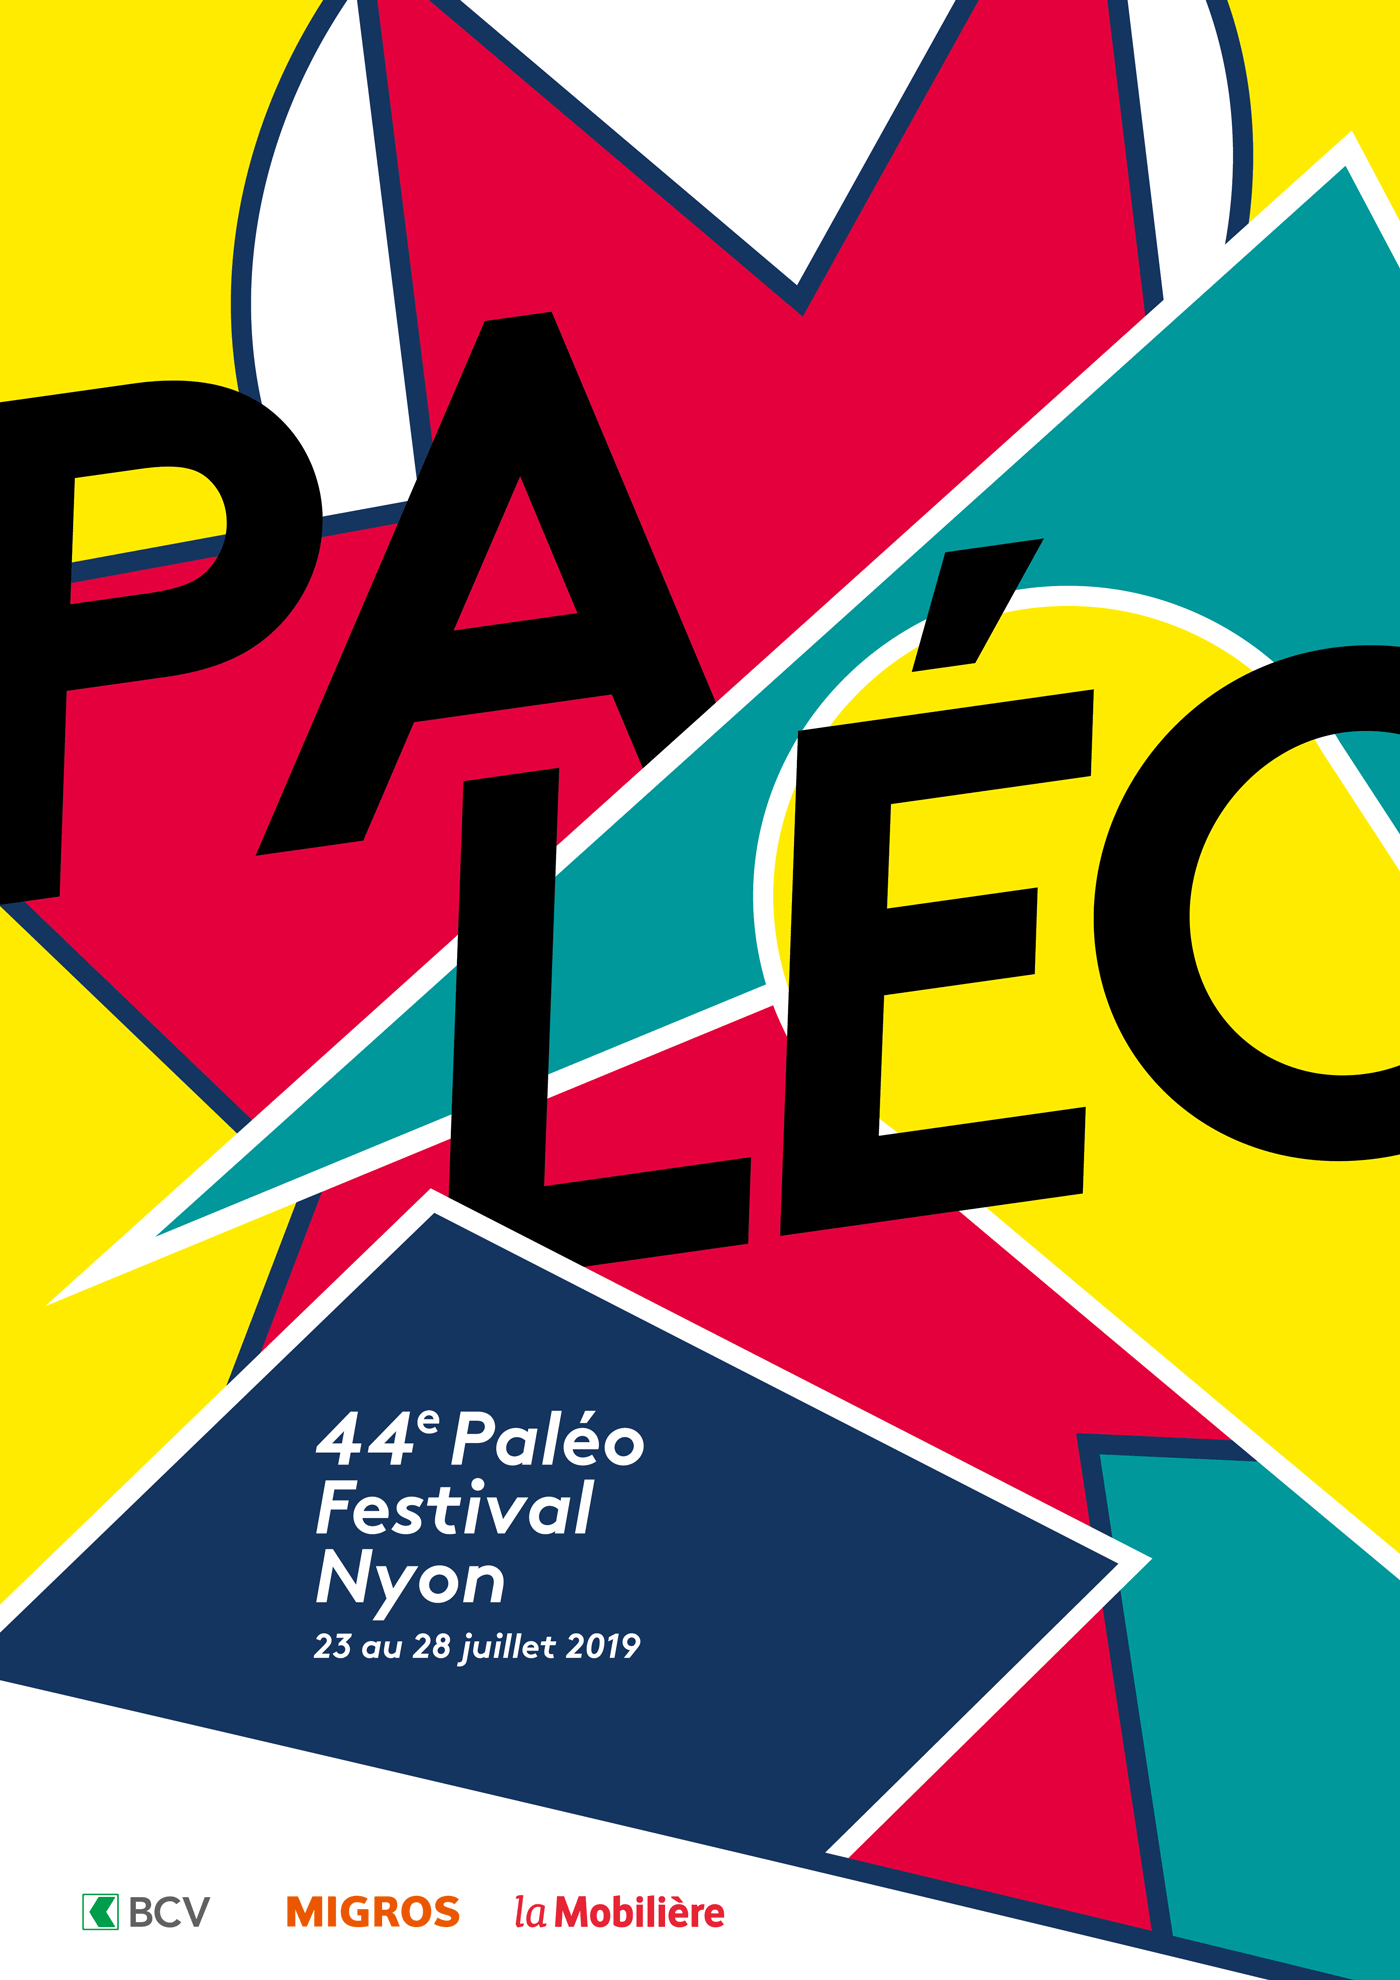 affiche_paleo_2019-1400-My6Ax2uY0G7sq.png